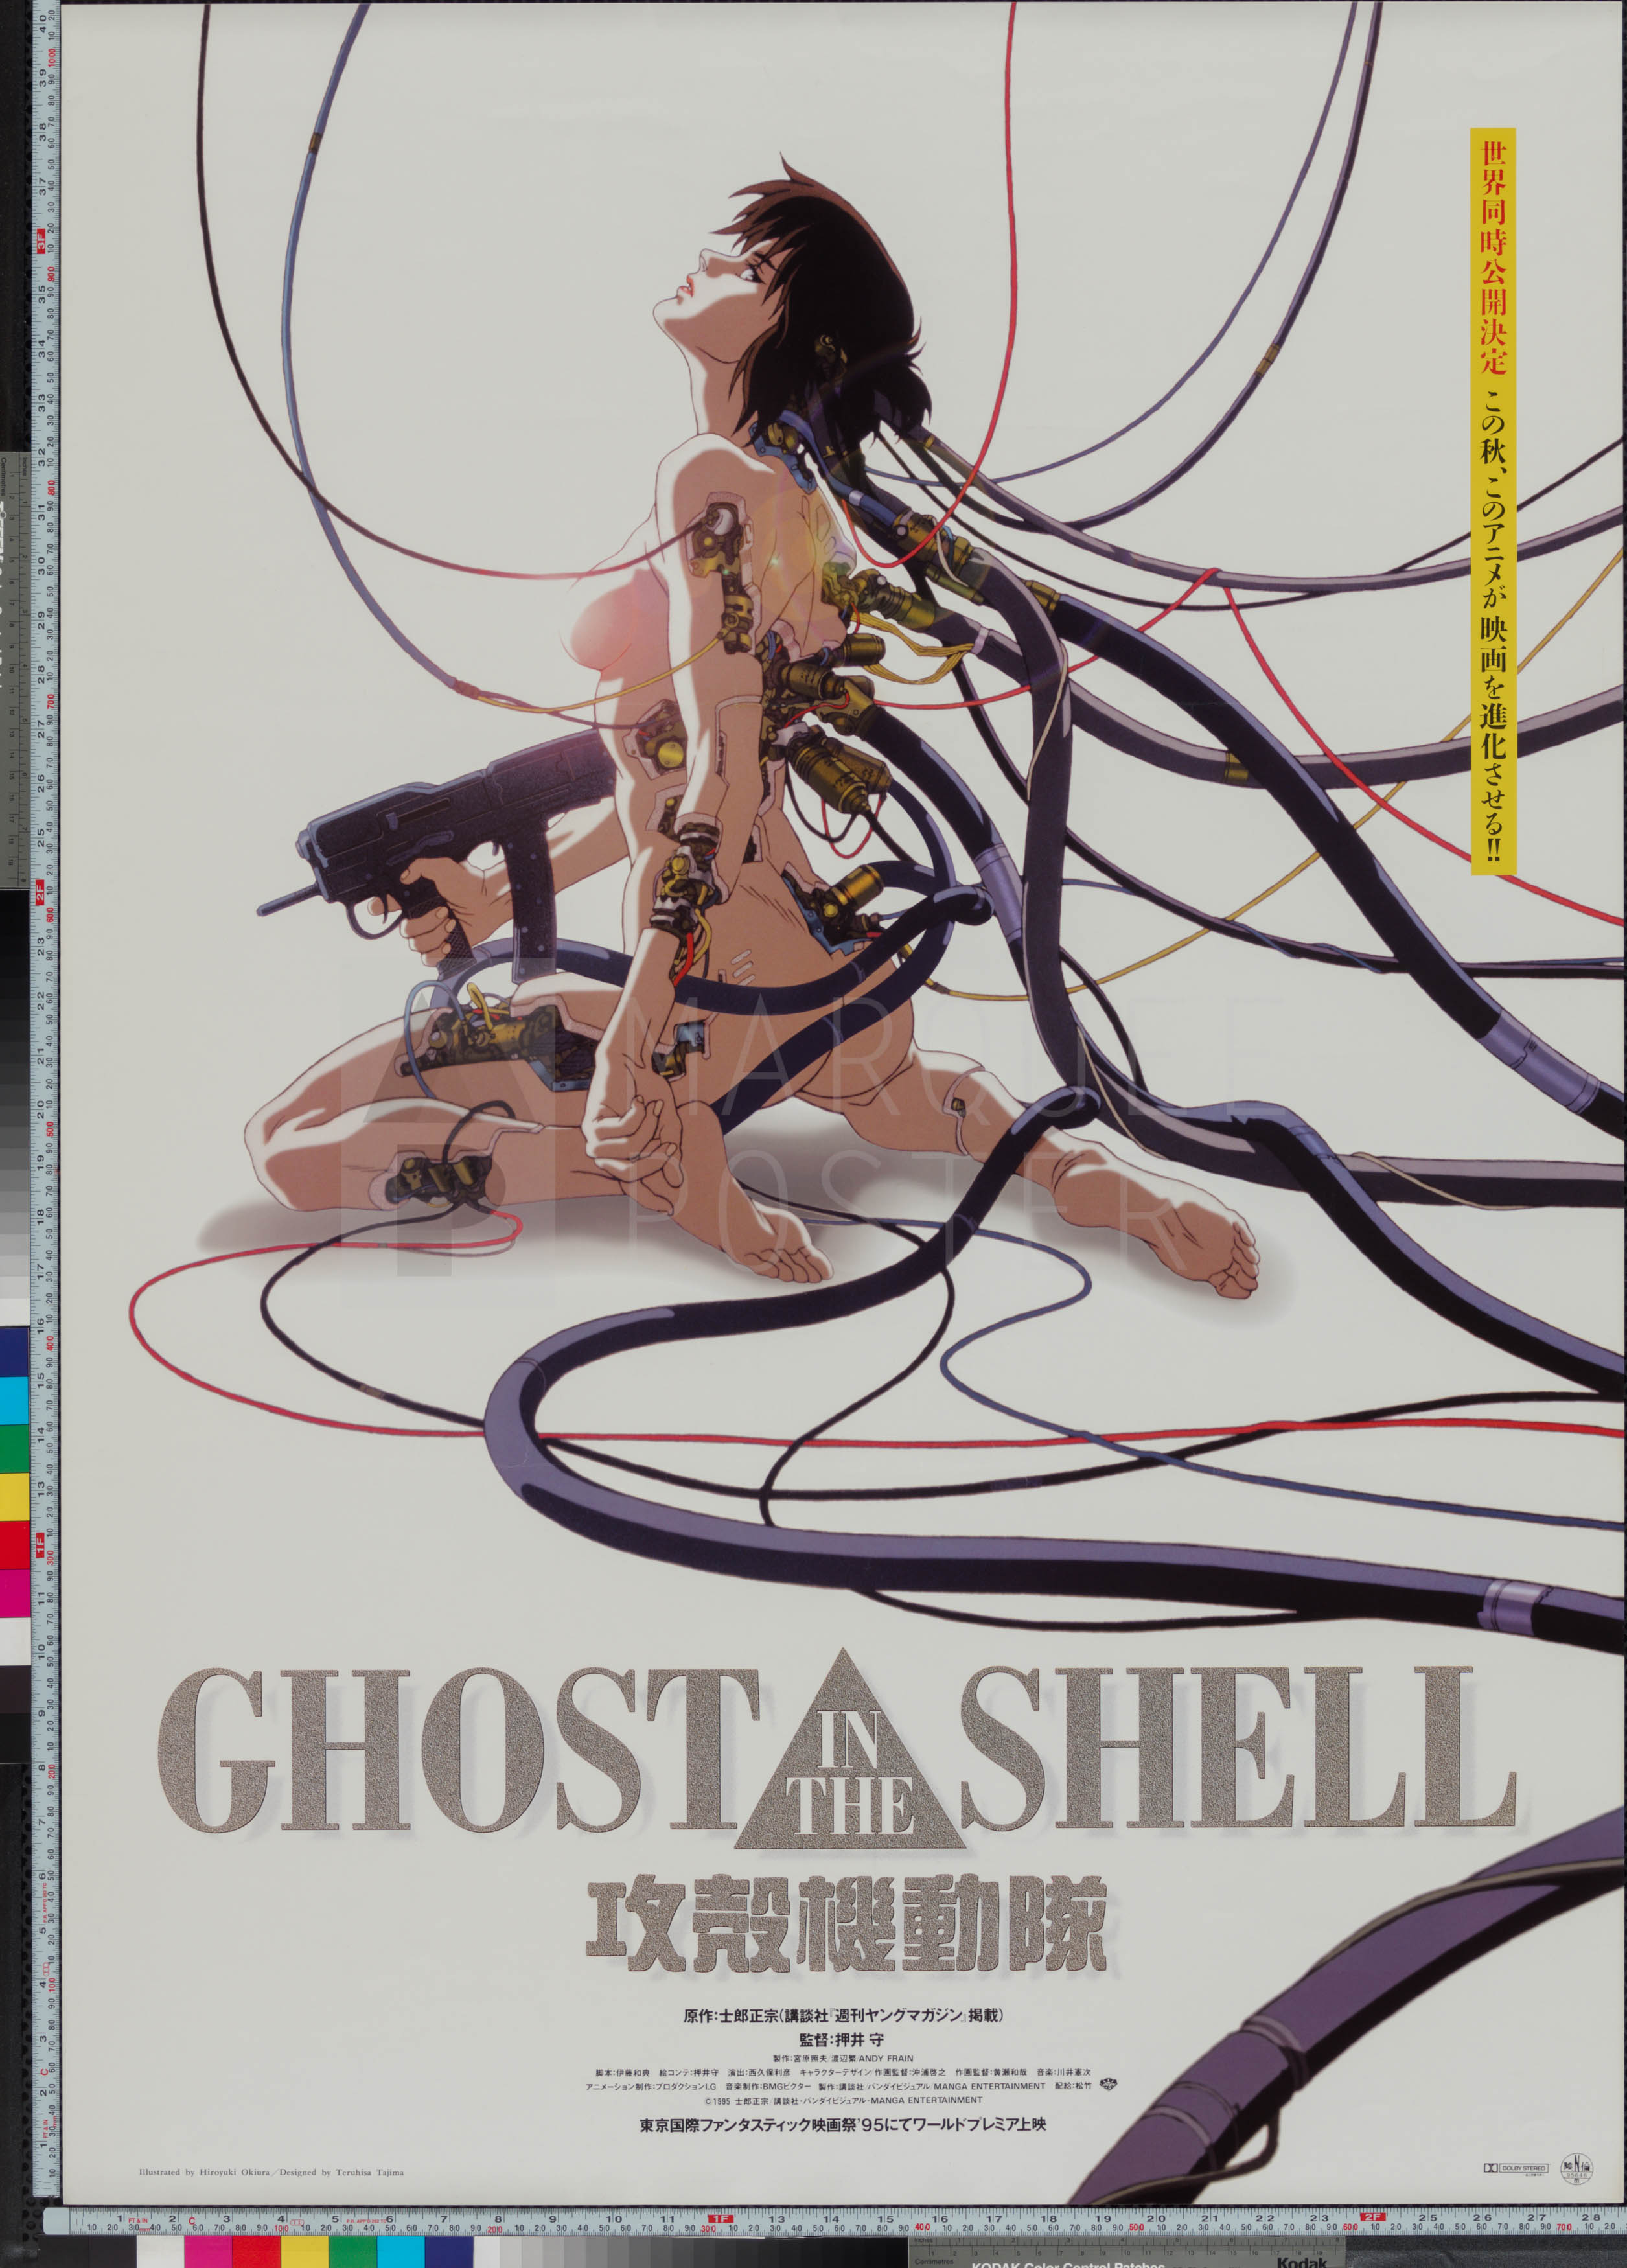 91-ghost-in-the-shell-body-style-japanese-b1-1995-02